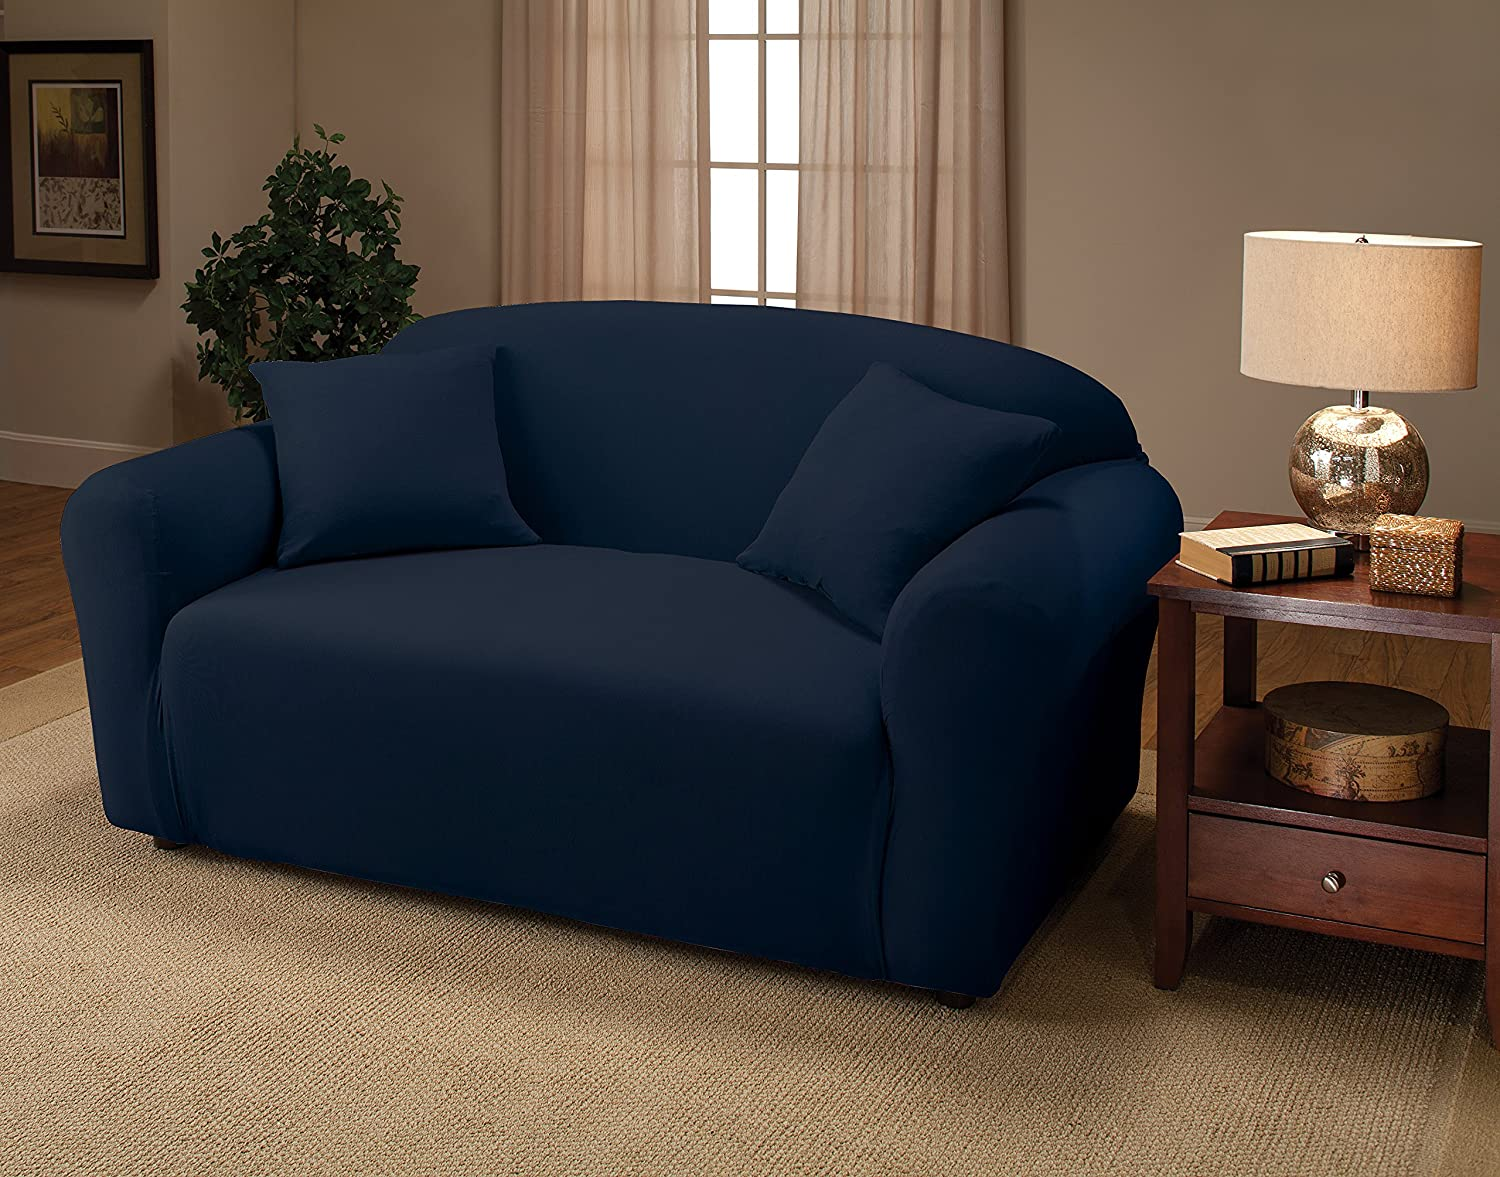 Solid Navy MADISON INDUSTRIES INC Madison Stretch Jersey Recliner Slipcover us home MBPT0 JER-LGRECL-NY Large